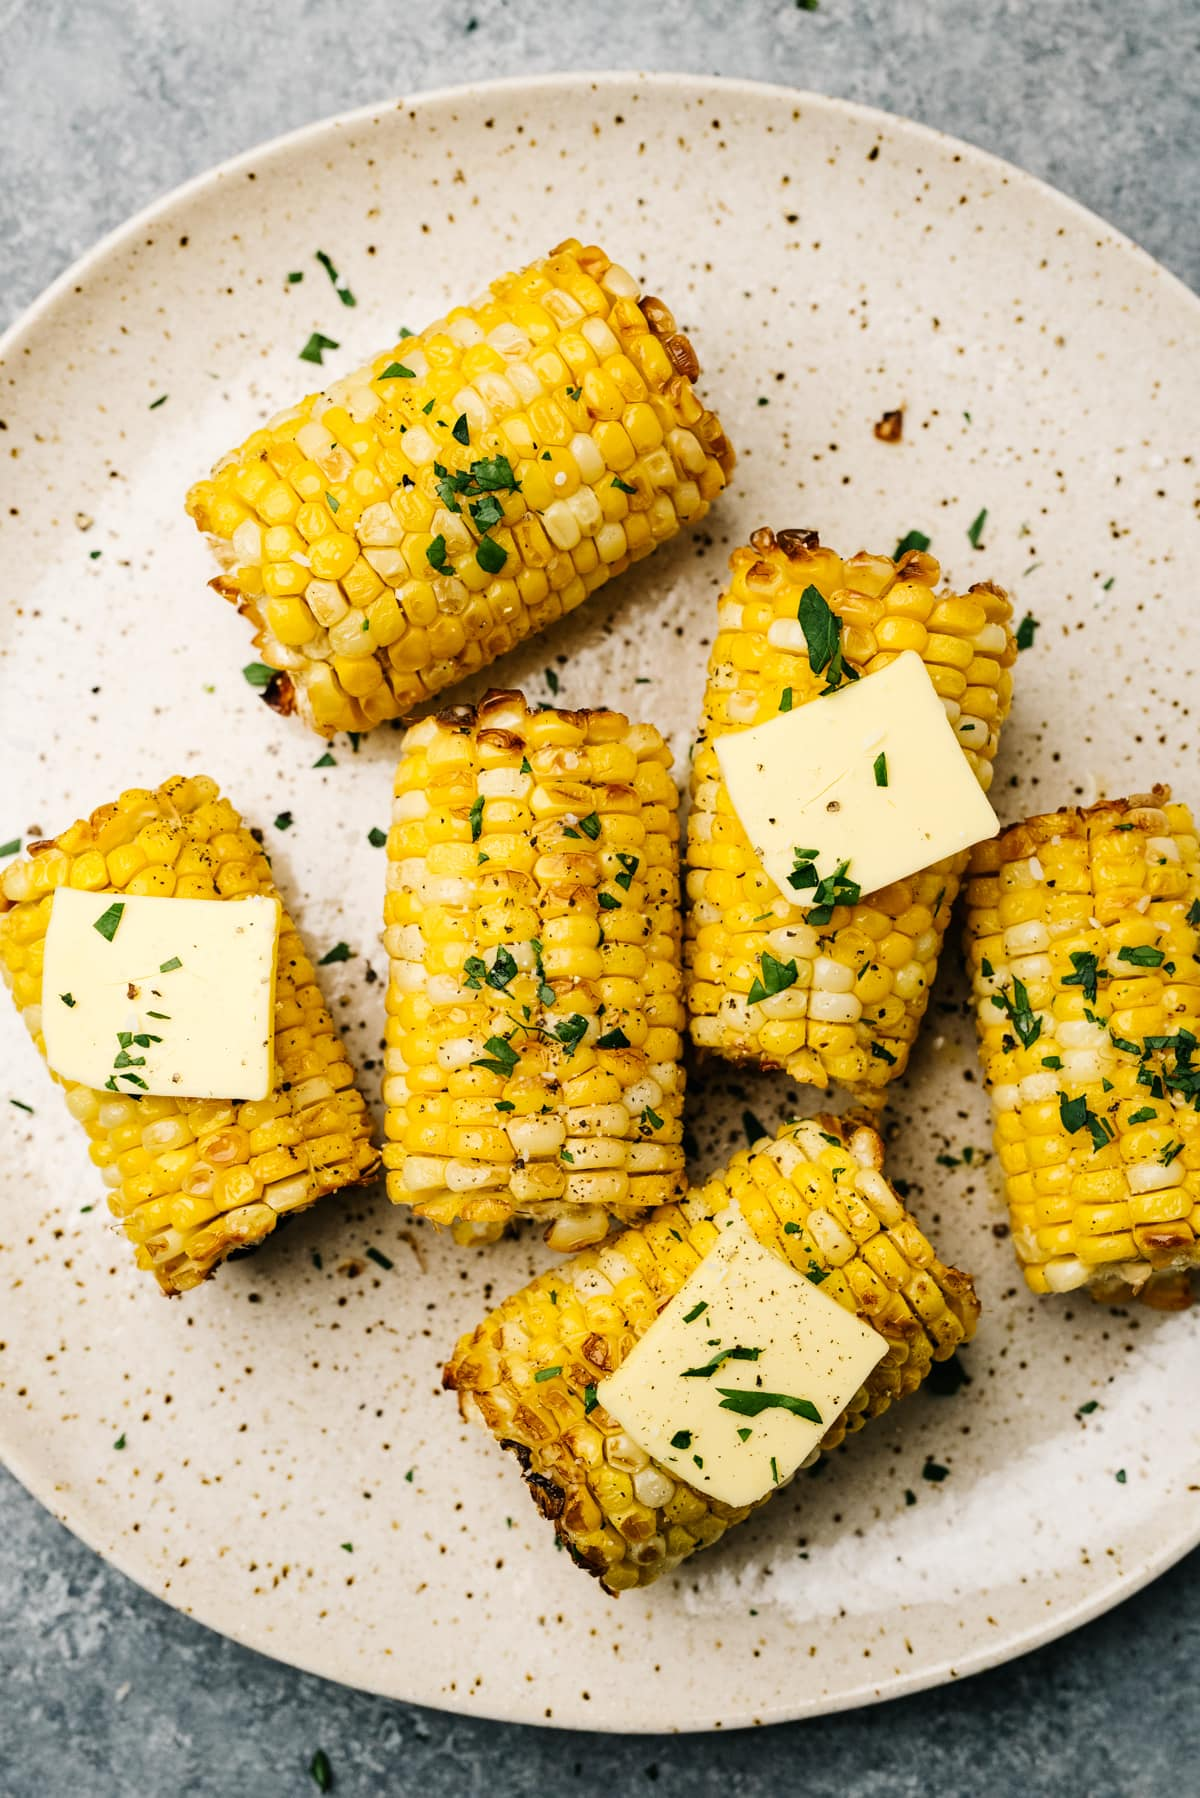 Corn on the cob cooked in an air fryer on a tan speckled plate, topped with butter and chopped fresh herbs.